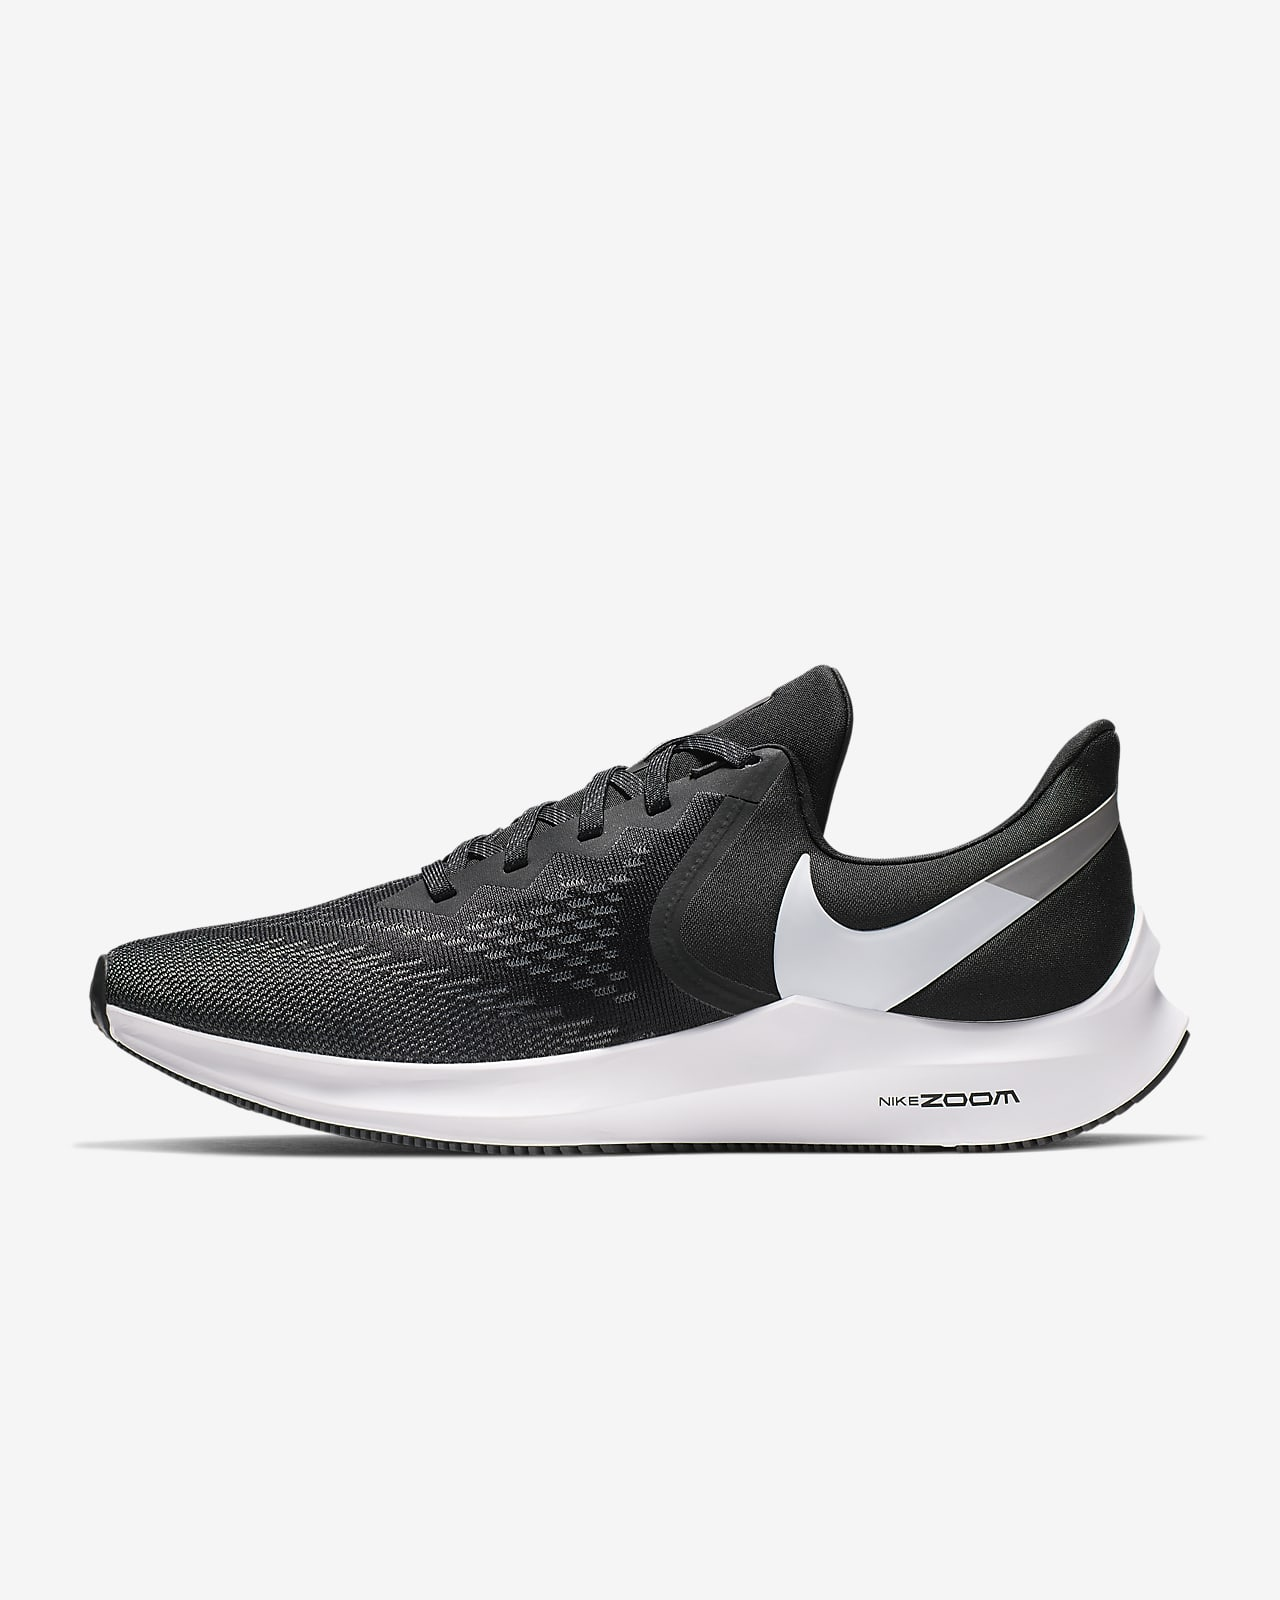 Nike Air Zoom Winflo 6 Men's Running Shoe